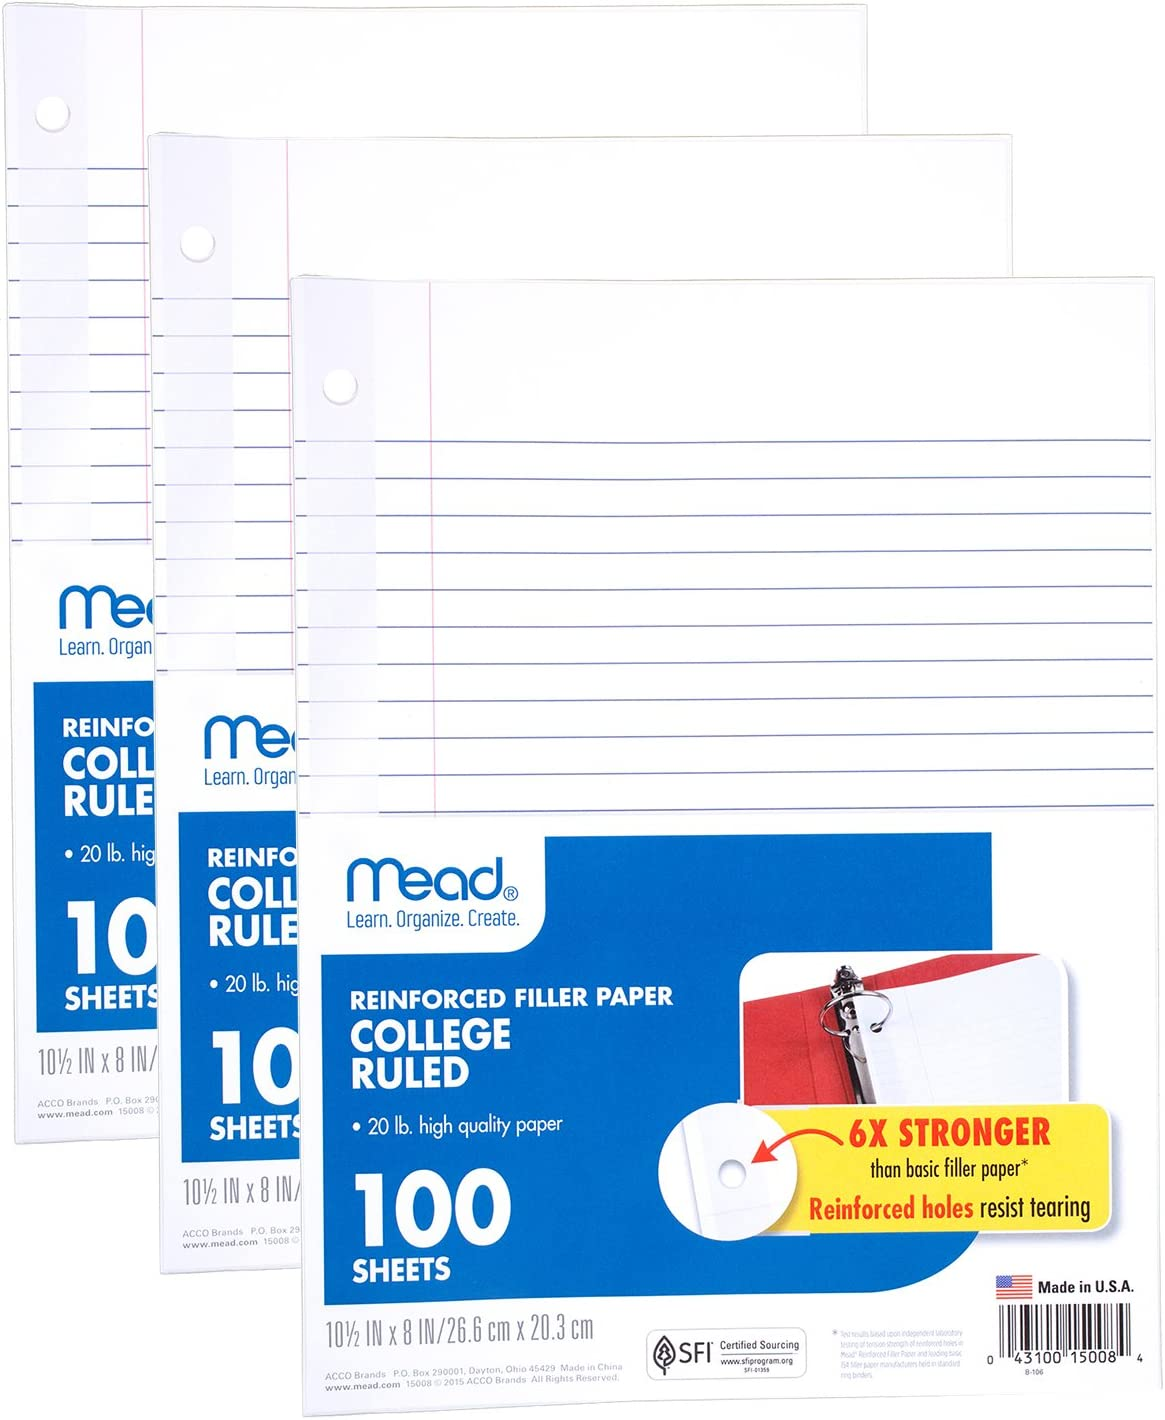 Wide Ruled 3 Hole Punched Loose Leaf Paper 38033 10-1//2 x 8 inches 100 Sheets//Pack 1 Pack of 3 Reinforced Filler Paper